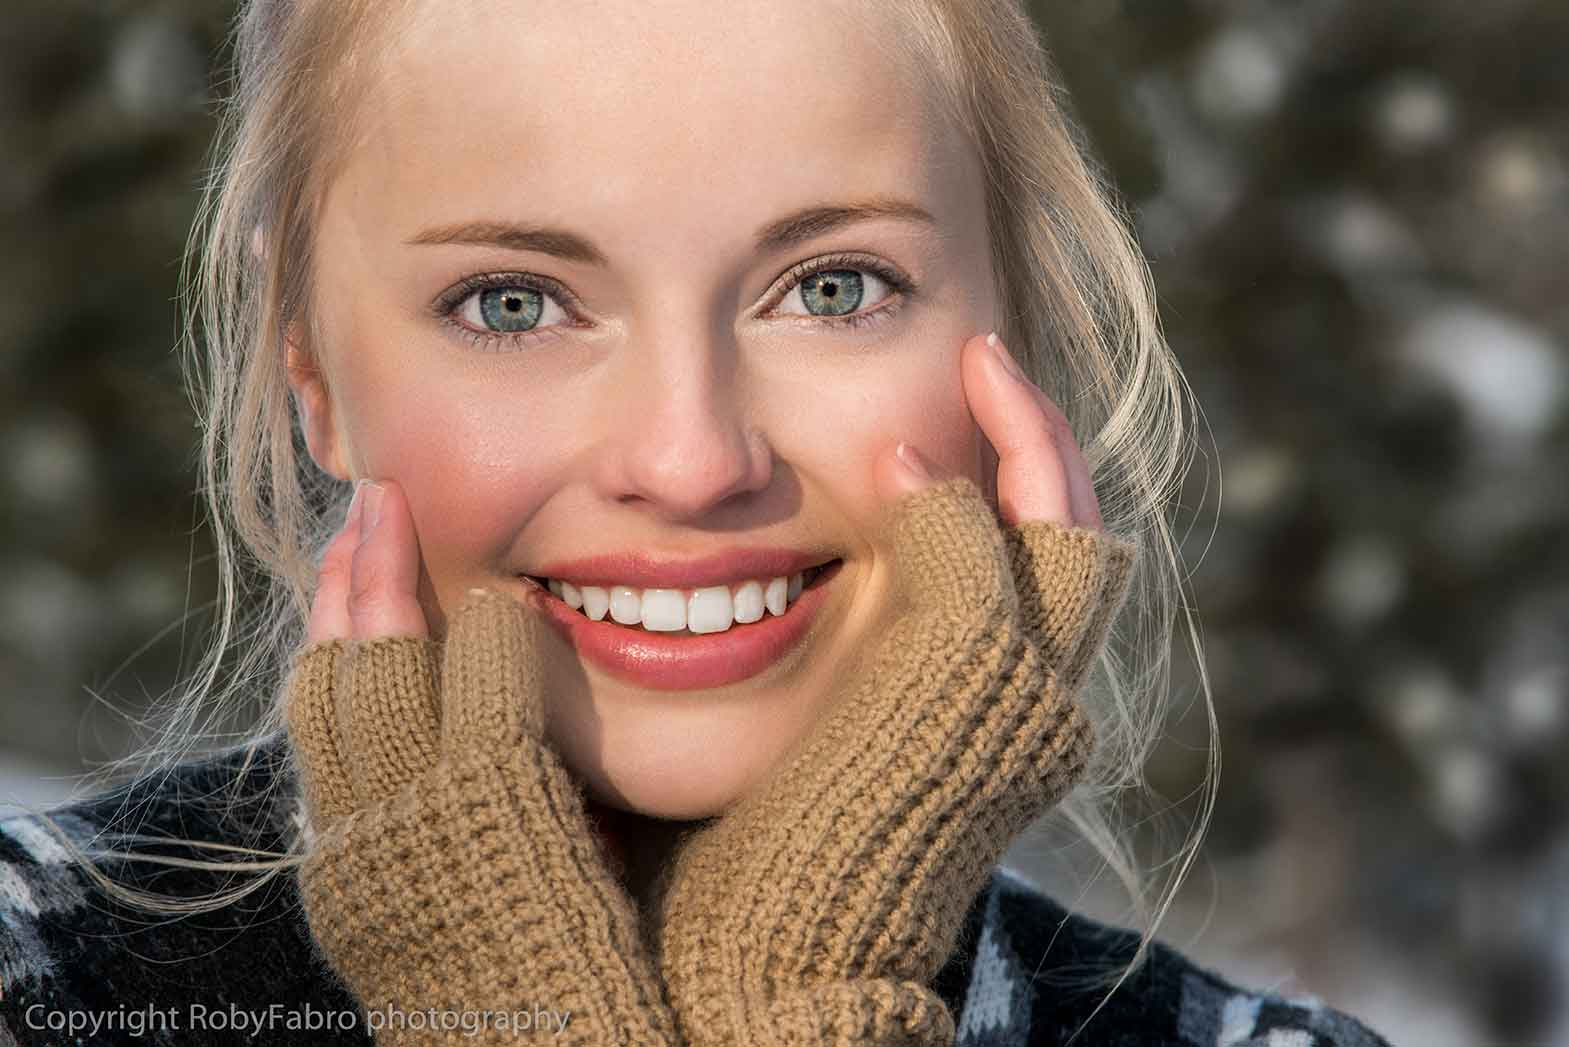 Lifestyle photography, close up of young woman. Breckenridge, Colorado